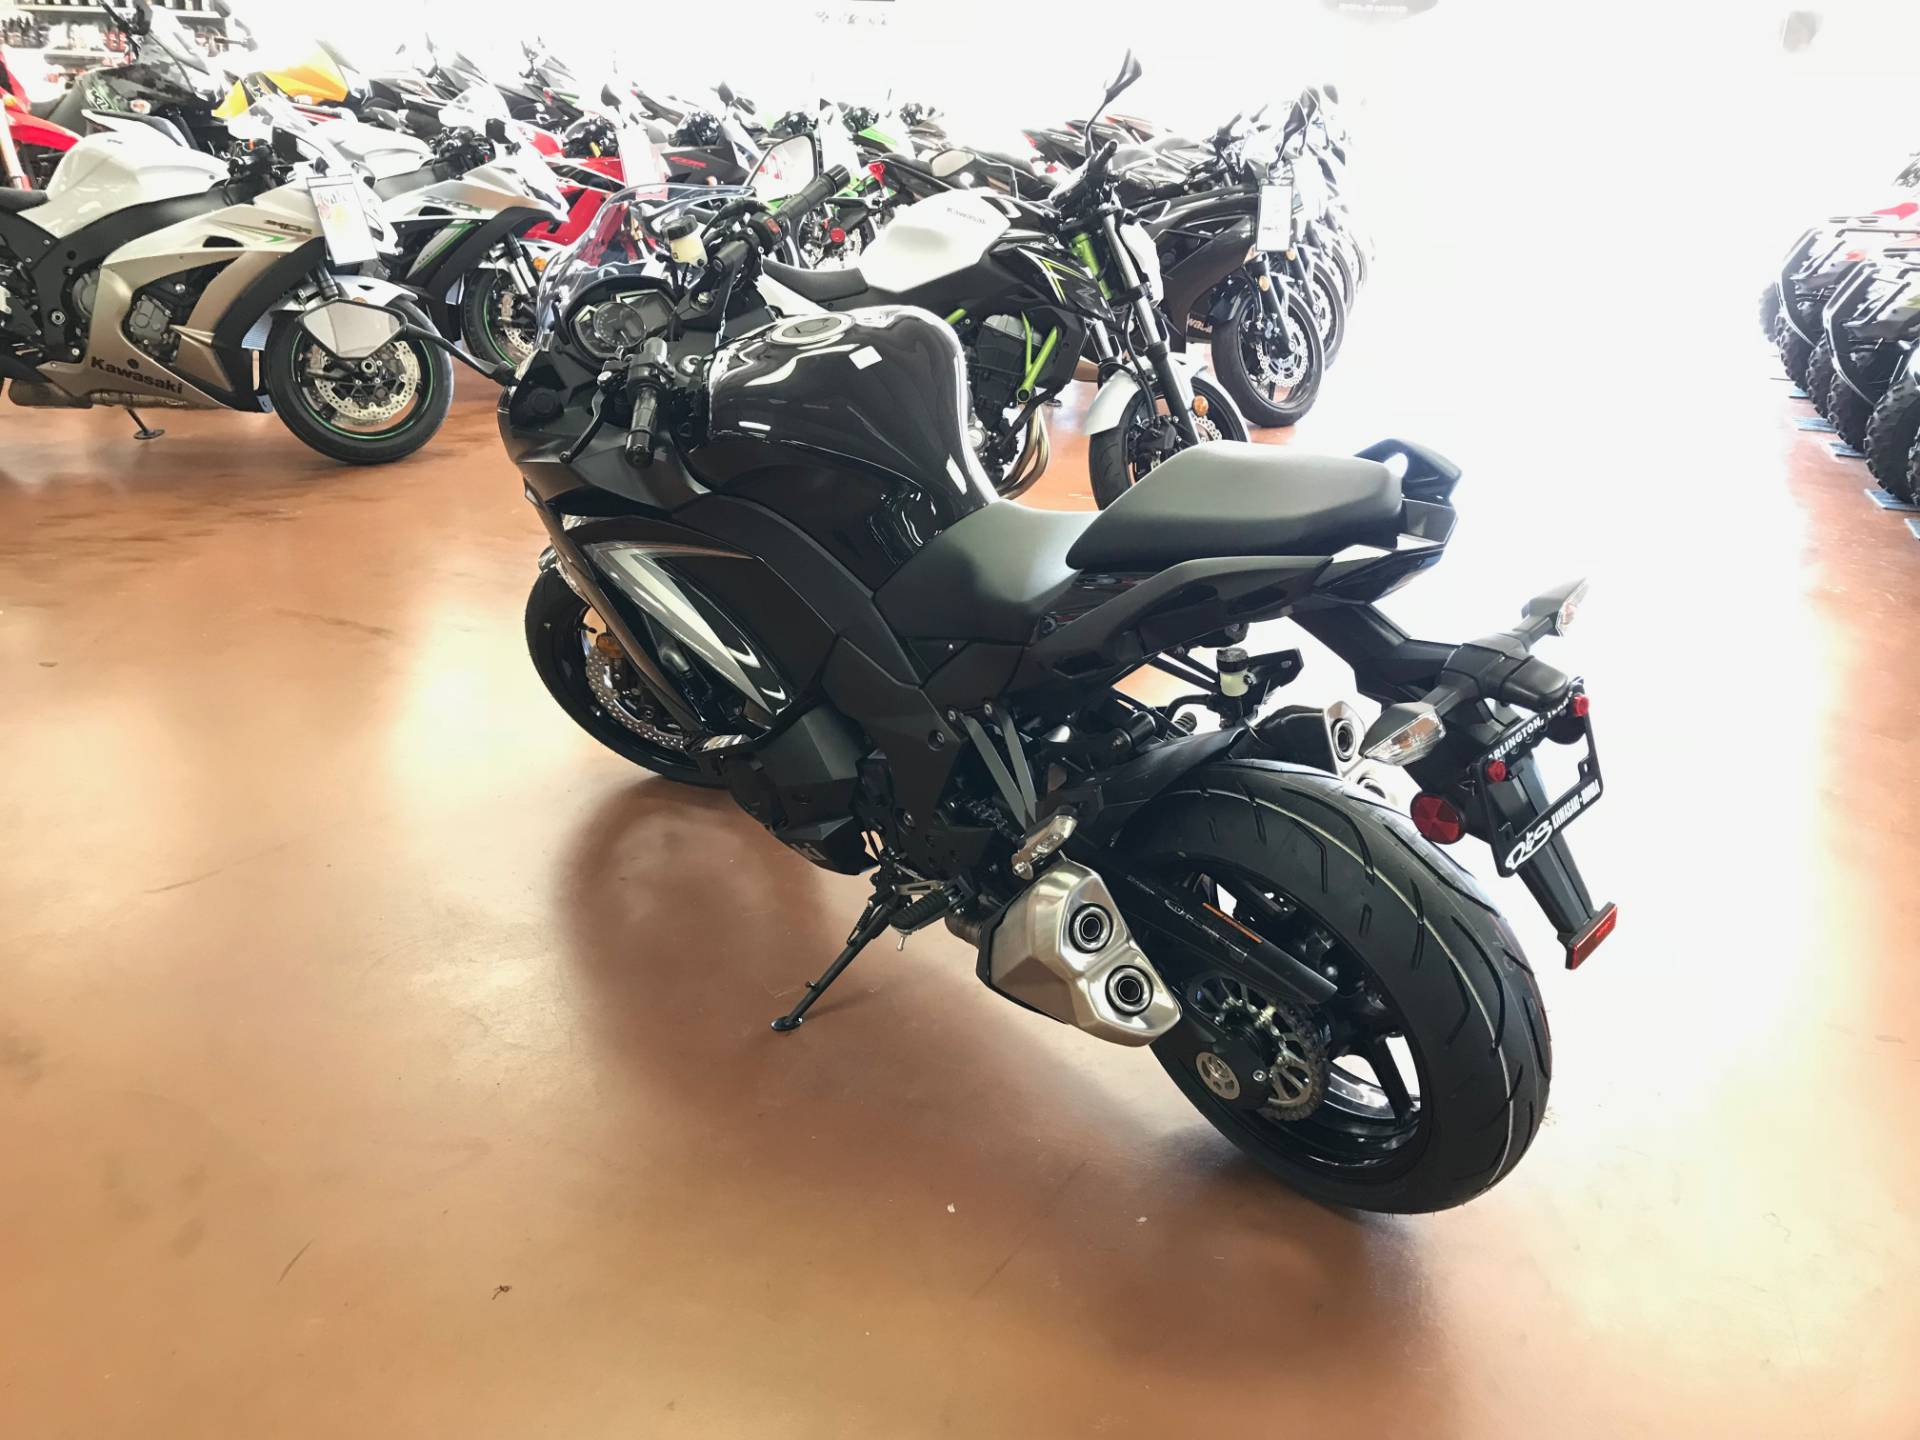 2019 Kawasaki NINJA 1000 ABS in Arlington, Texas - Photo 4